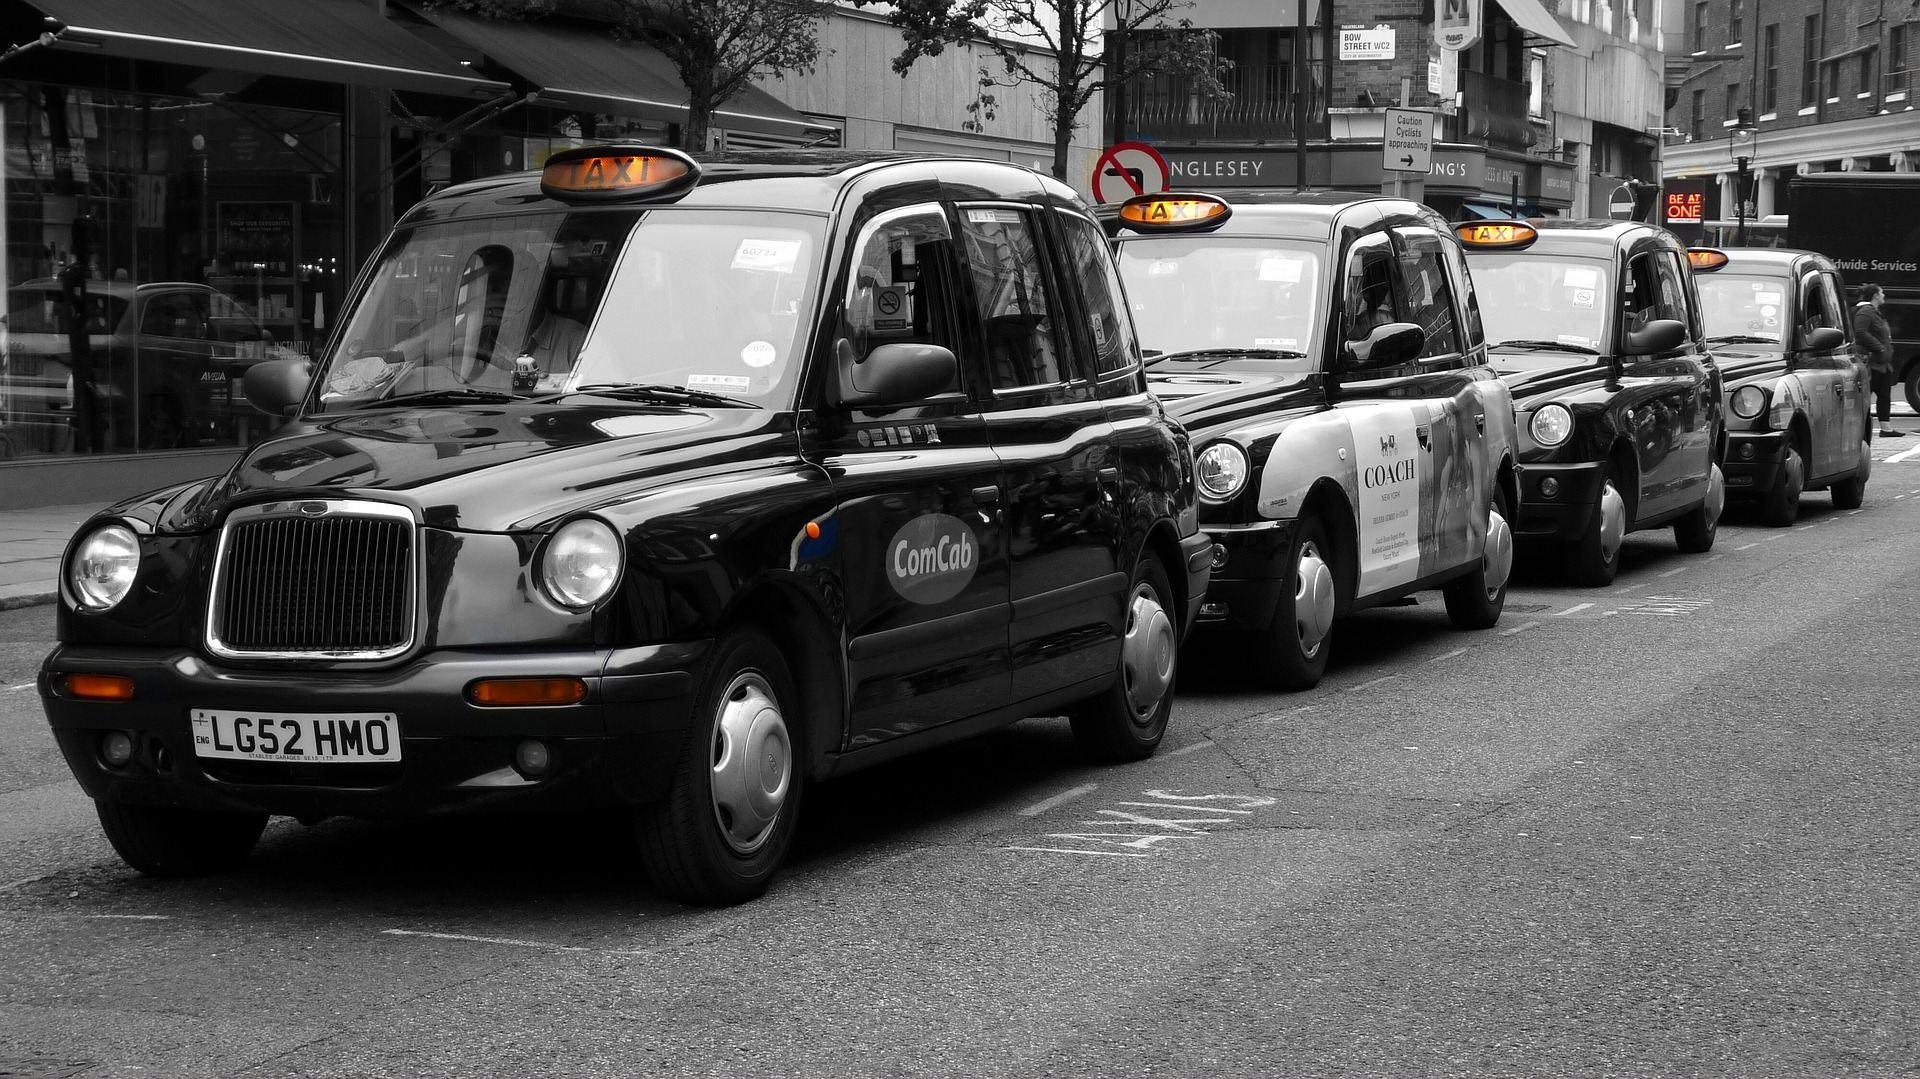 Black cabs, an affordable London transport